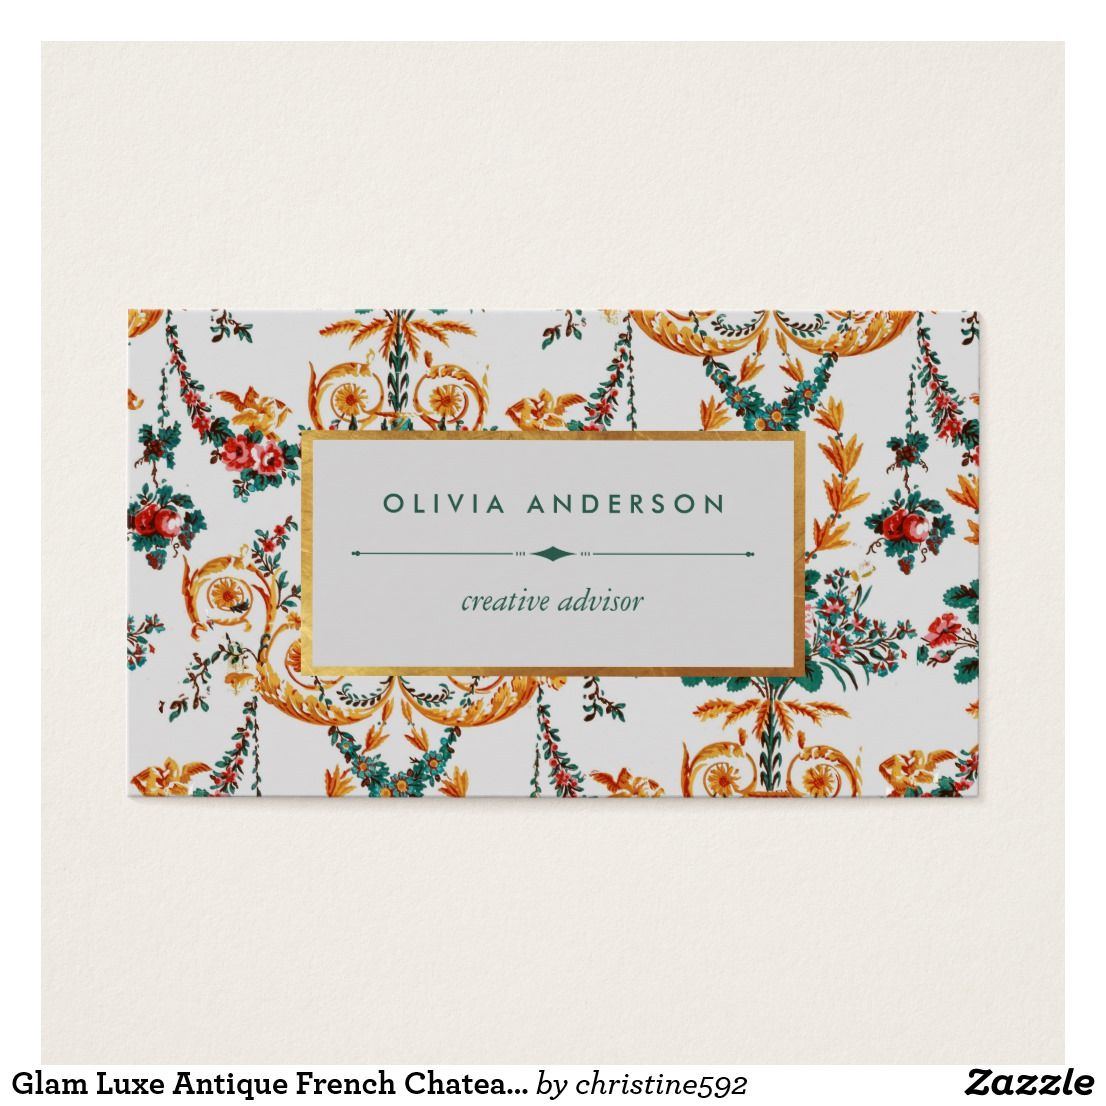 Glam Luxe Antique French Chateau Roses Wallpaper Business Card ...